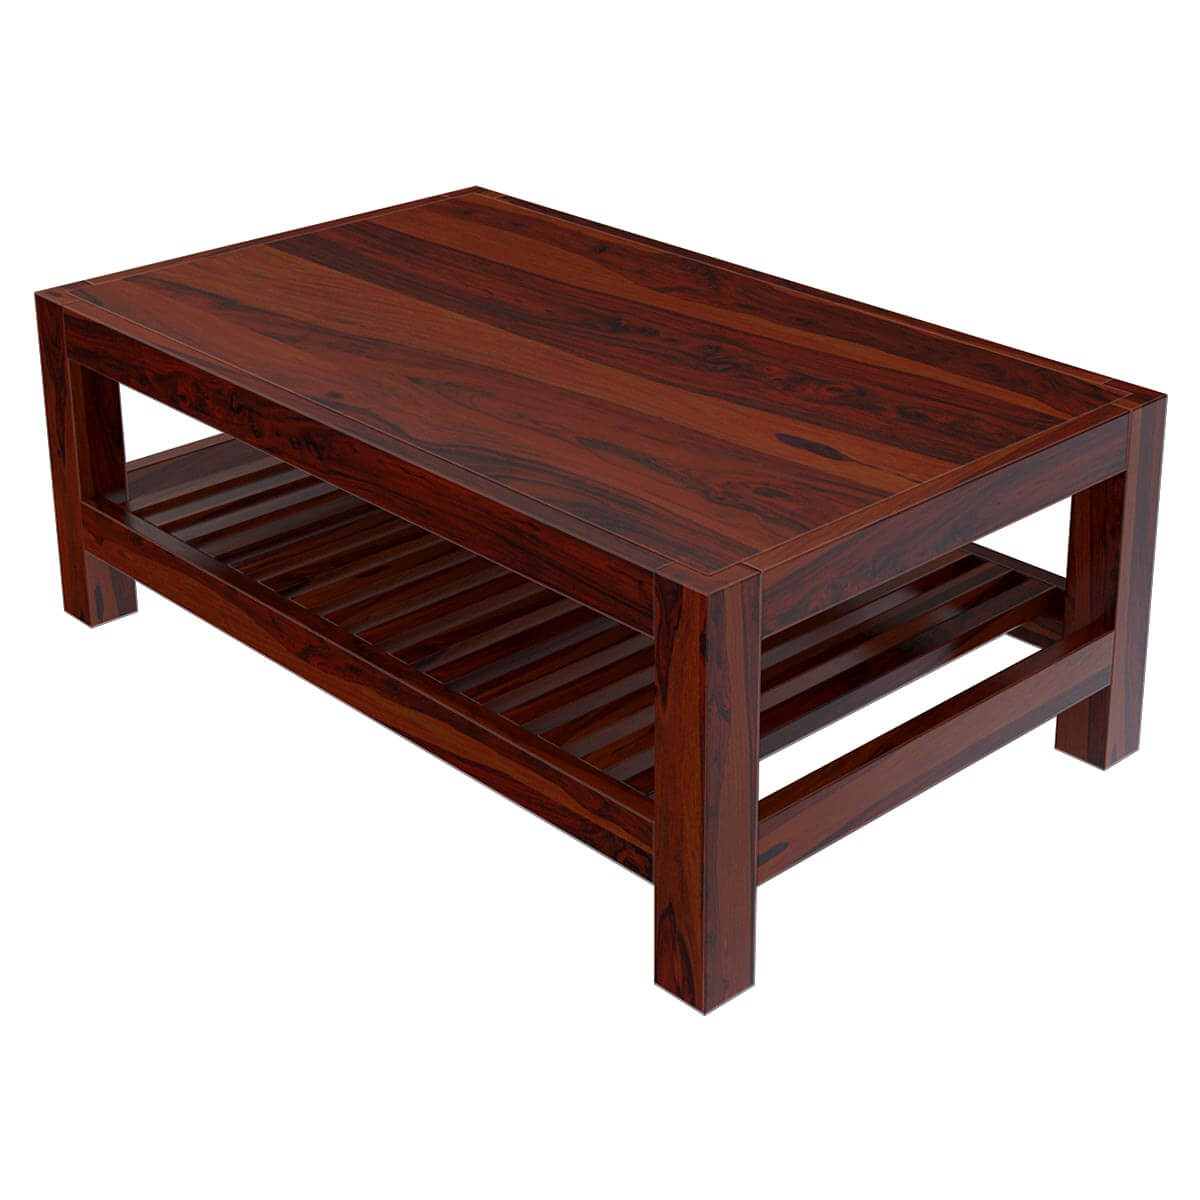 Modern Wood Coffee Table: Solid Wood Portland Contemporary 2 Tier Coffee Table